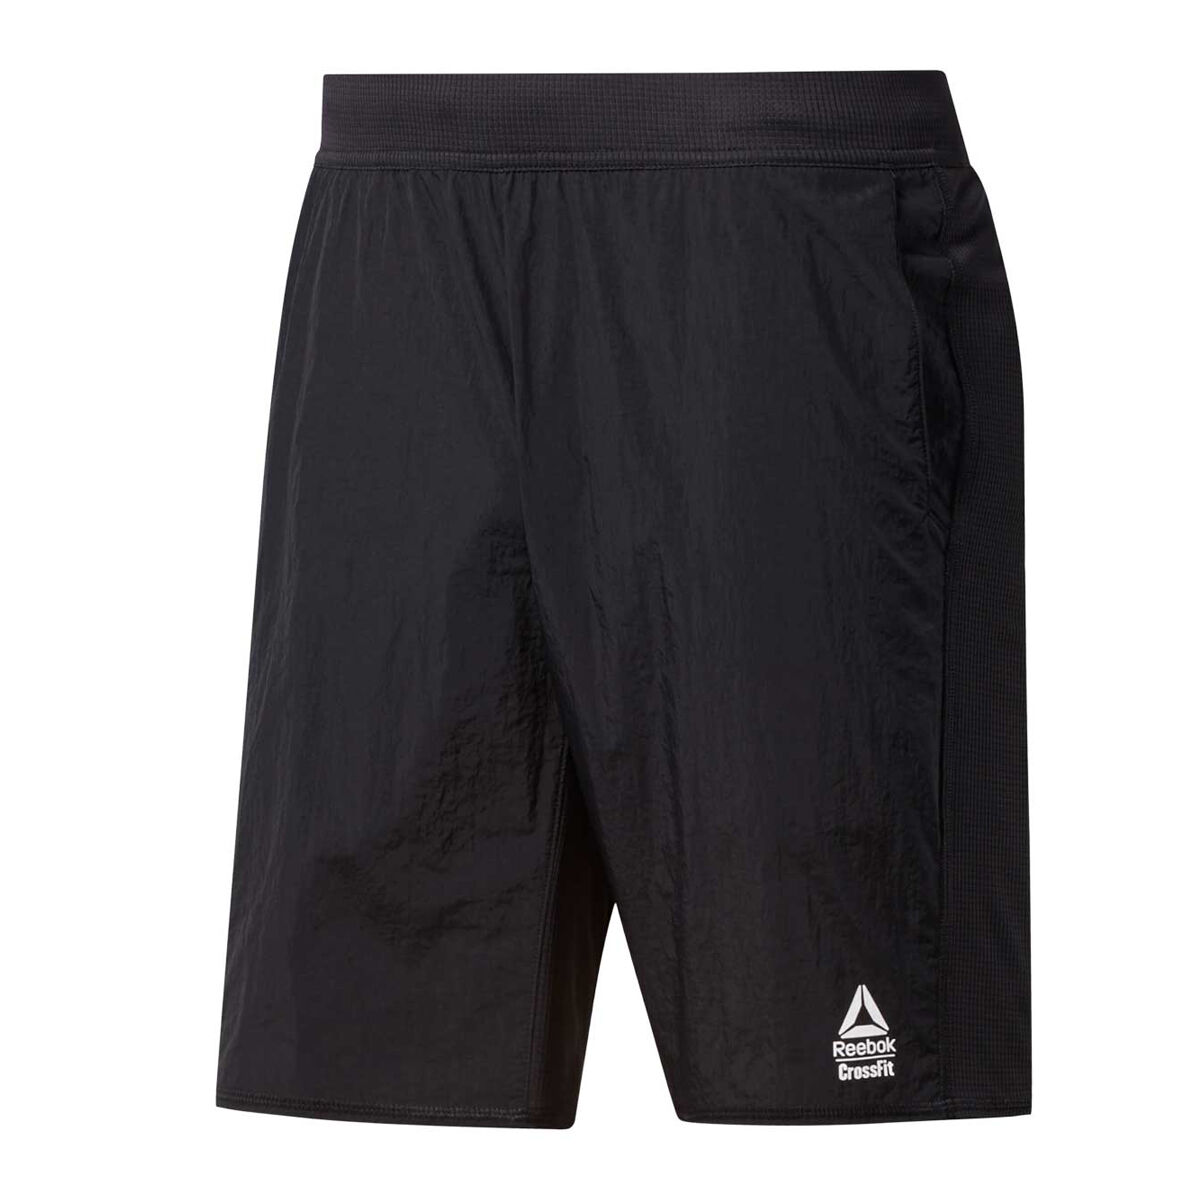 Head Mens Shorts Black Gray Tennis Intervals Workout Crossfit Exercise Football